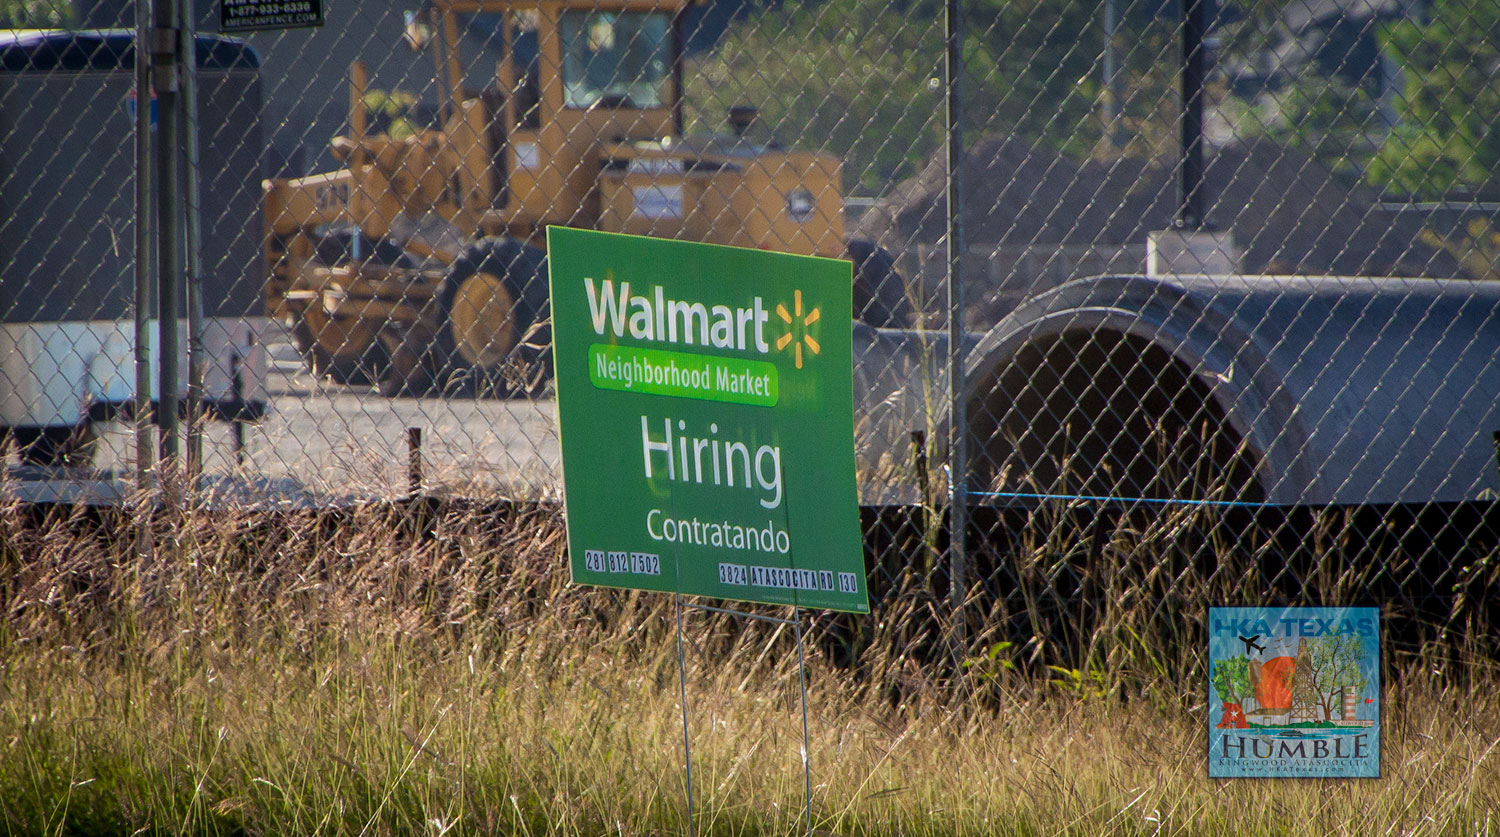 atascocita s new walmart neighborhood market one step closer previous photos